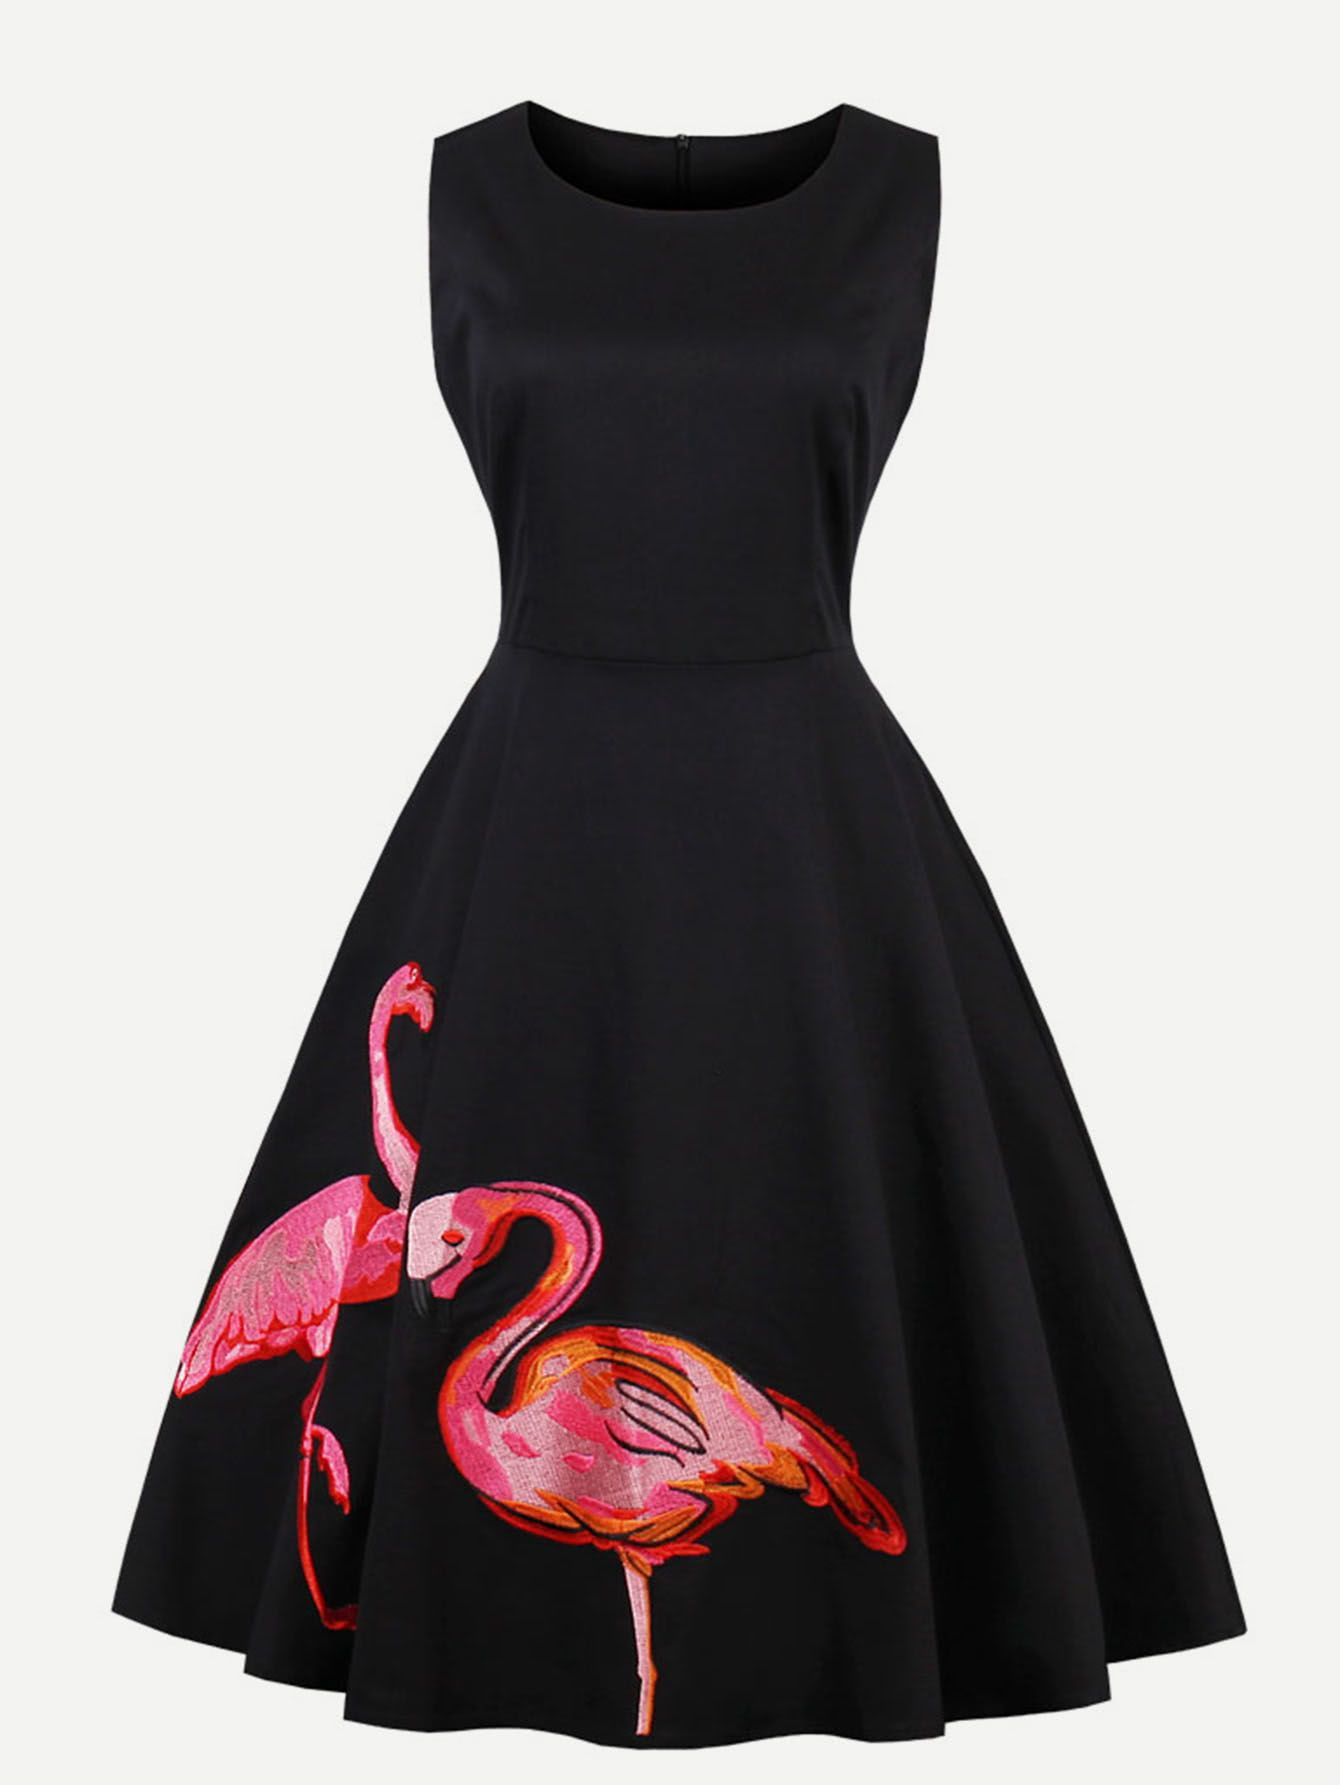 2f2ed8ebab Shop Flamingo Embroidered Swing Dress online. SheIn offers Flamingo  Embroidered Swing Dress & more to fit your fashionable needs.